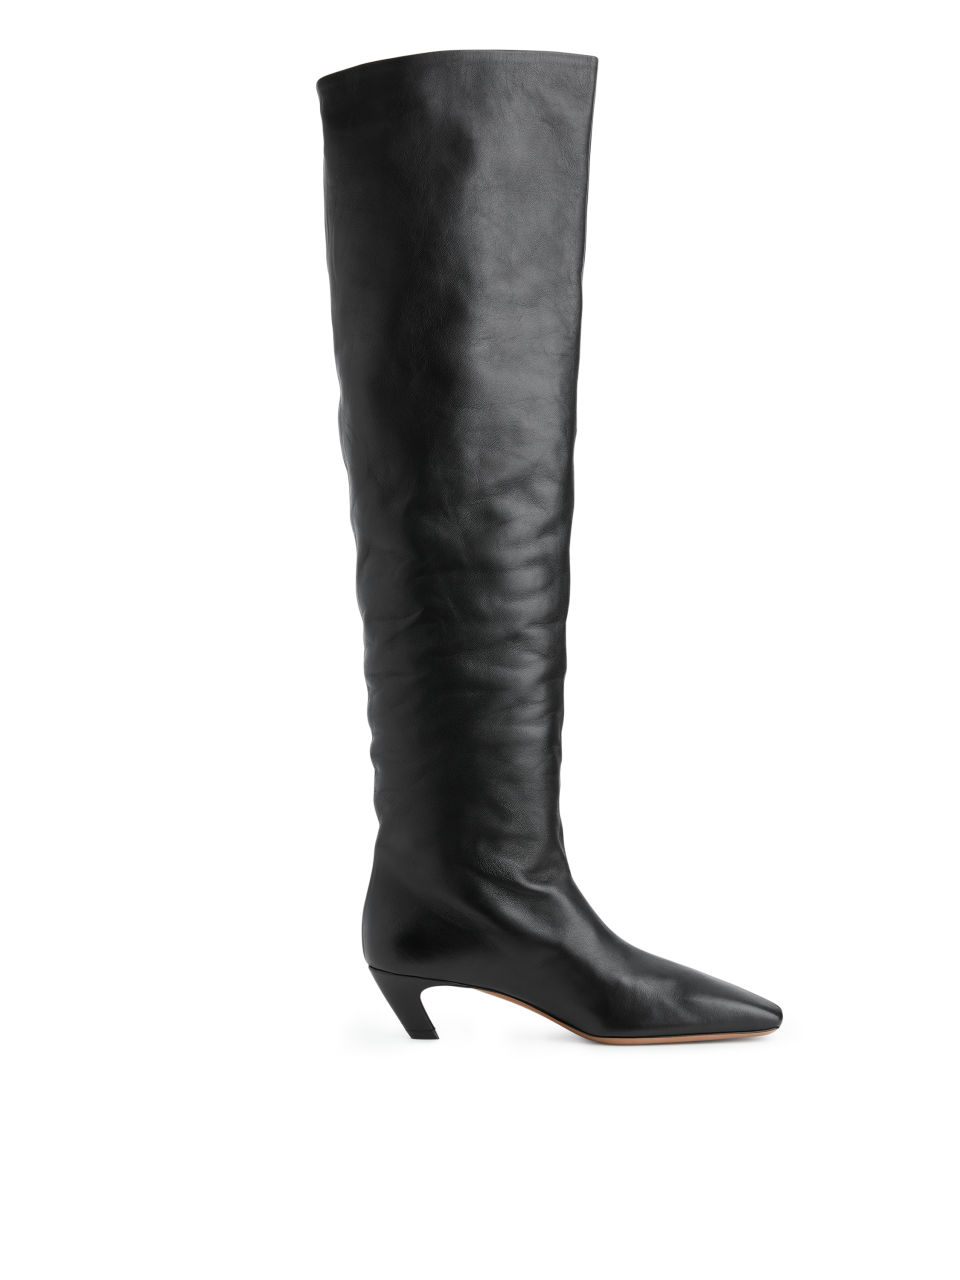 Over-The-Knee Leather Boots - Black